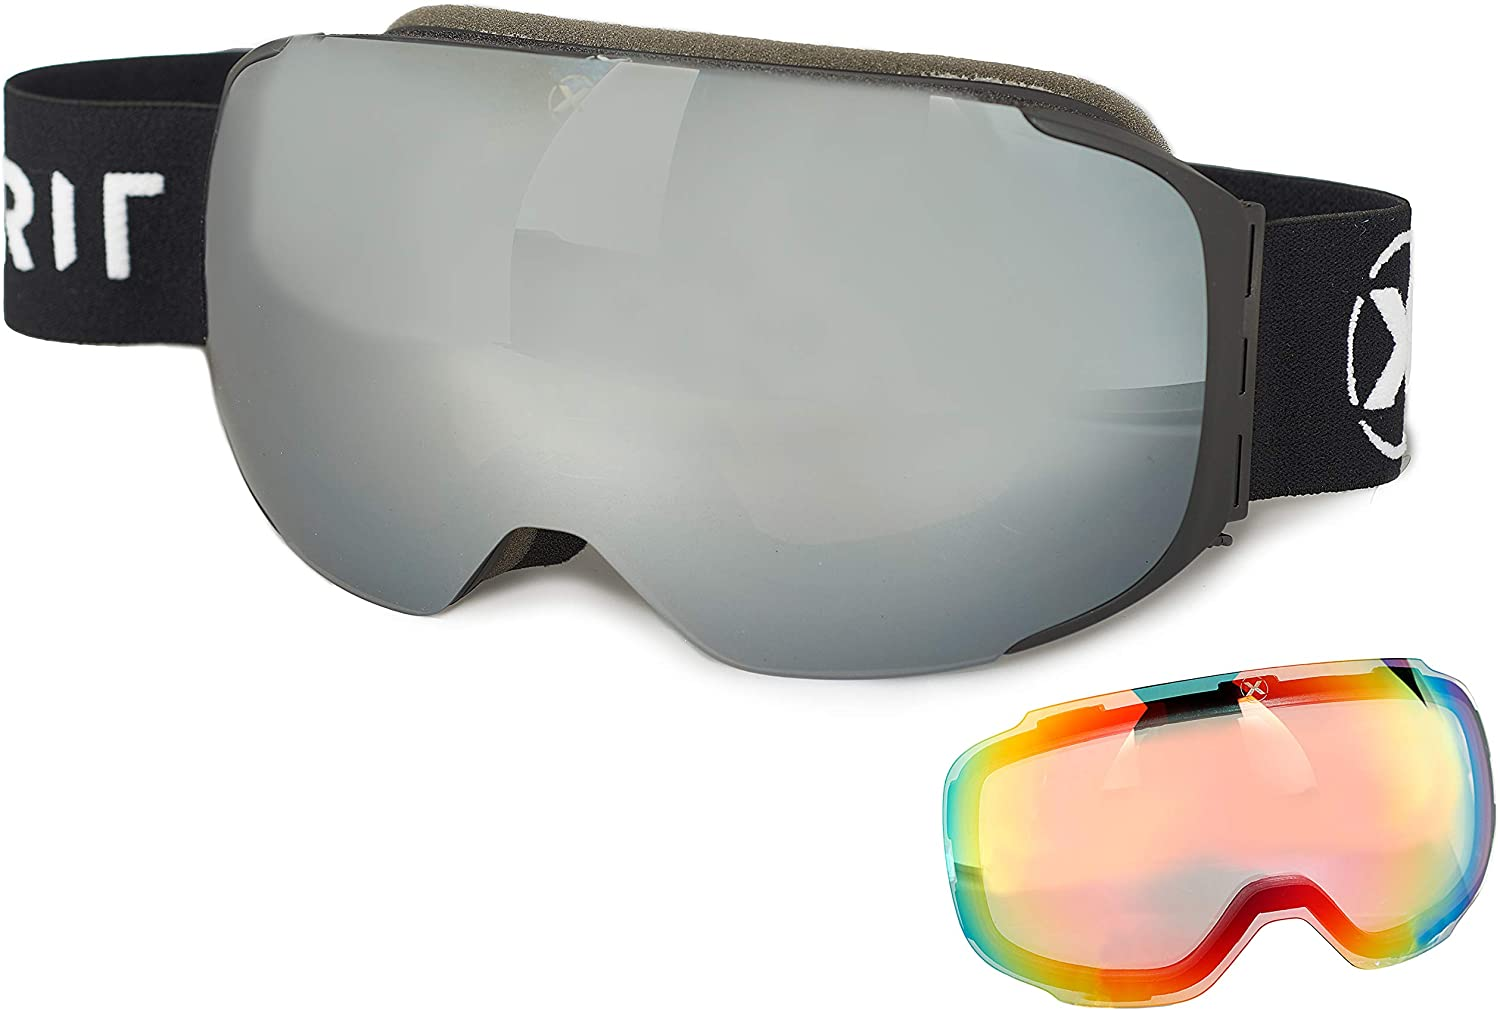 XPIRIT Ski & Snowboard Goggles Men & Women - 100% UV Protection, Anti-Fog & Anti-Scratch - Over-The-Glasses Design, Interchangeable Magnetic Dual Layers Lens - 2 Pairs of Lenses